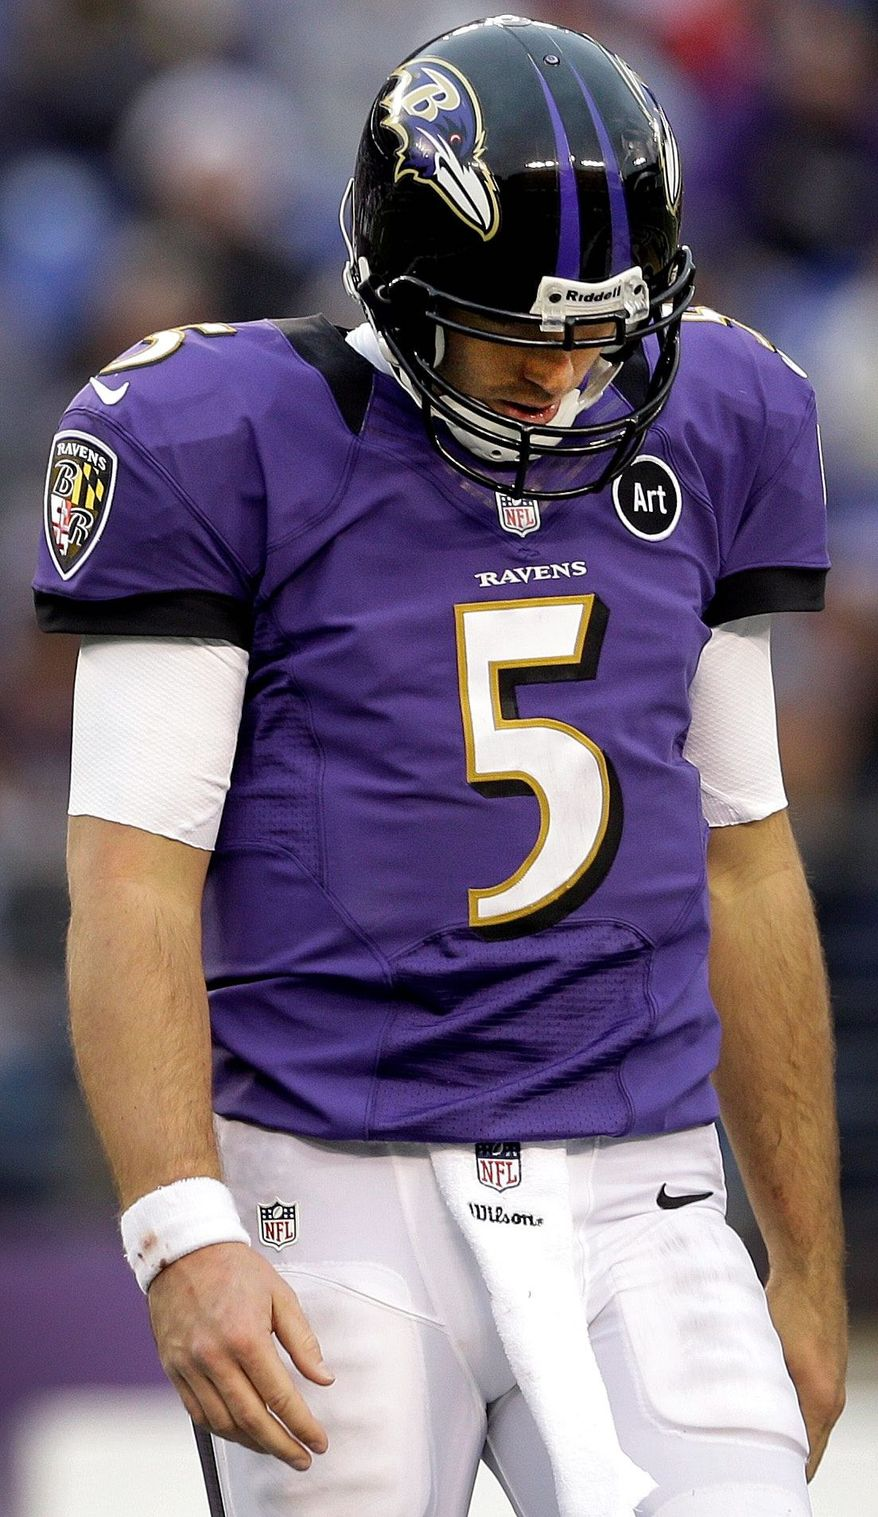 Ravens quarterback Joe Flacco walks off the field with his head down during the second half of Baltimore's 34-17 loss to Denver on Dec. 16. The two teams meet again Saturday in the divisional round of the playoffs. (Associated Press)